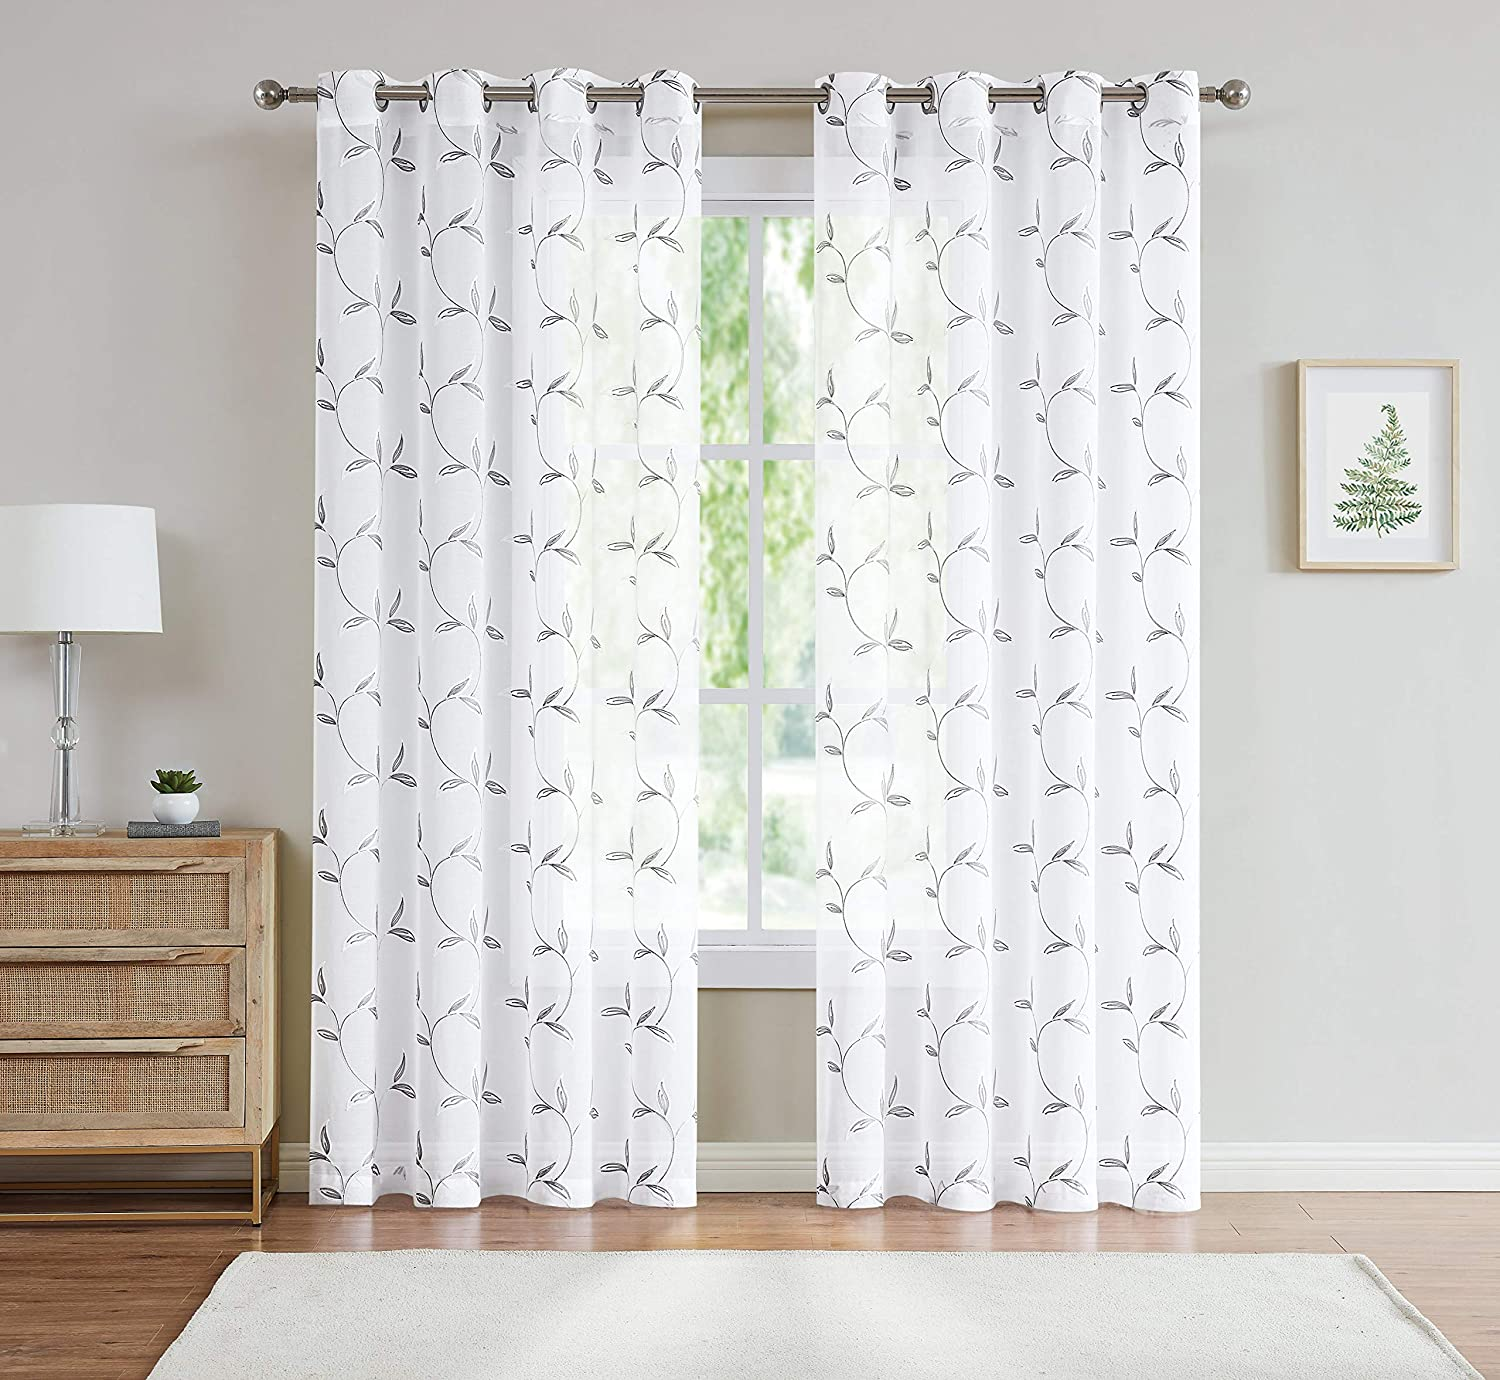 Linenzone Maria Embroidered Semi Sheer Curtains With Grommets 54 X 96 Inch Each Panel Total Size 108 Wide 2 Panels 54 W X 96 L White Charcoal Everything Else